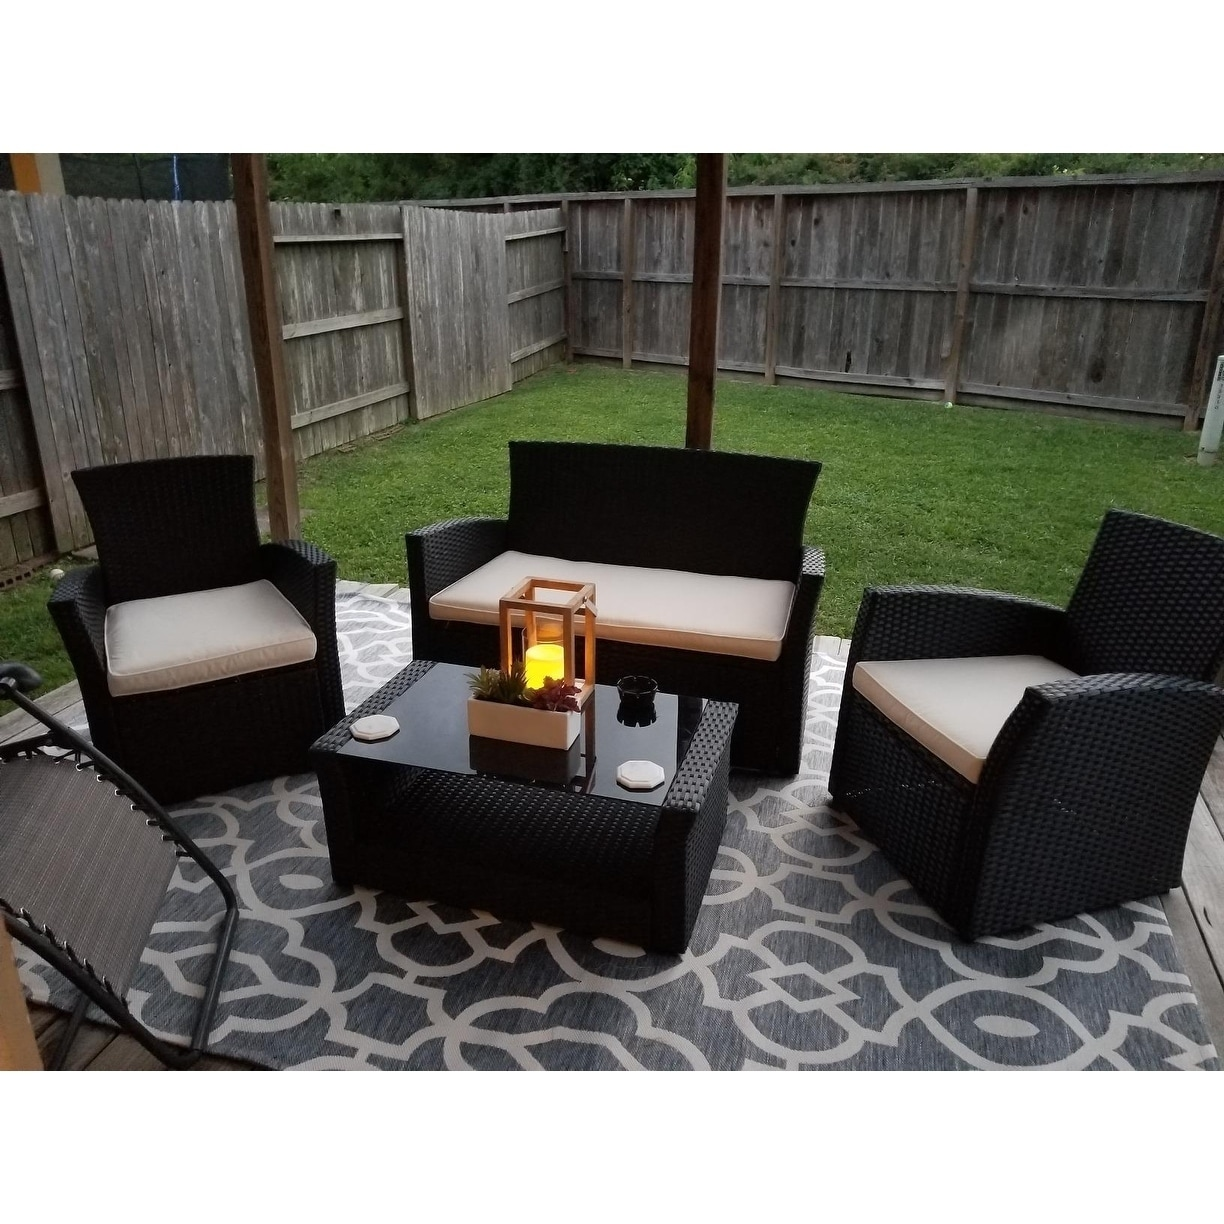 Outdoor Sofa Rattan 4 Piece Outdoor Patio Furniture Sets Wicker Outdoor Furniture Rattan Conversation Sofa Set Front Porch Sectional Set Black